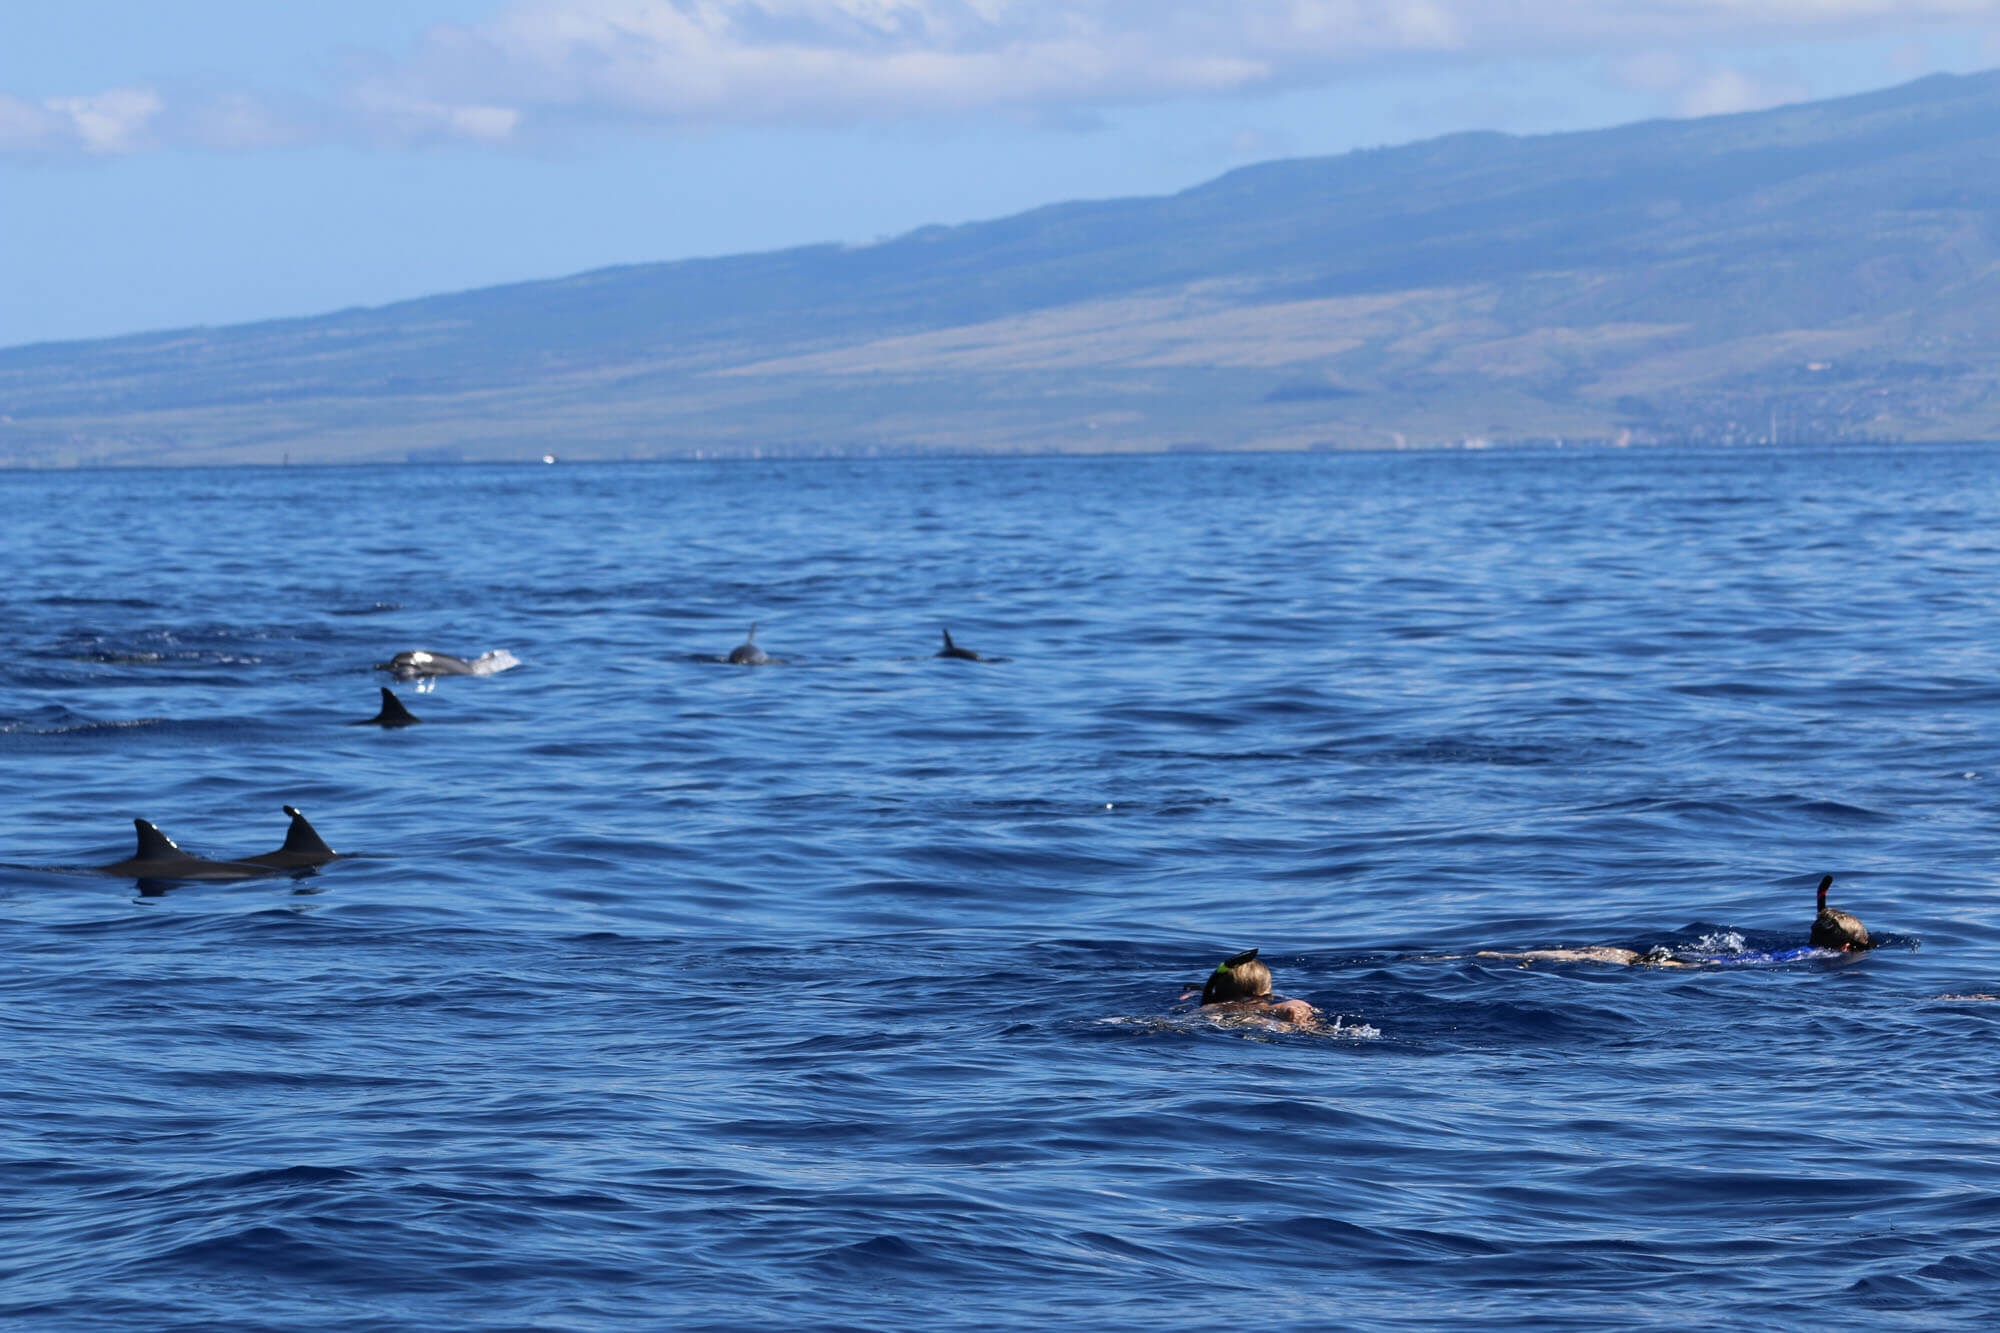 Boat Charter Tours on Maui